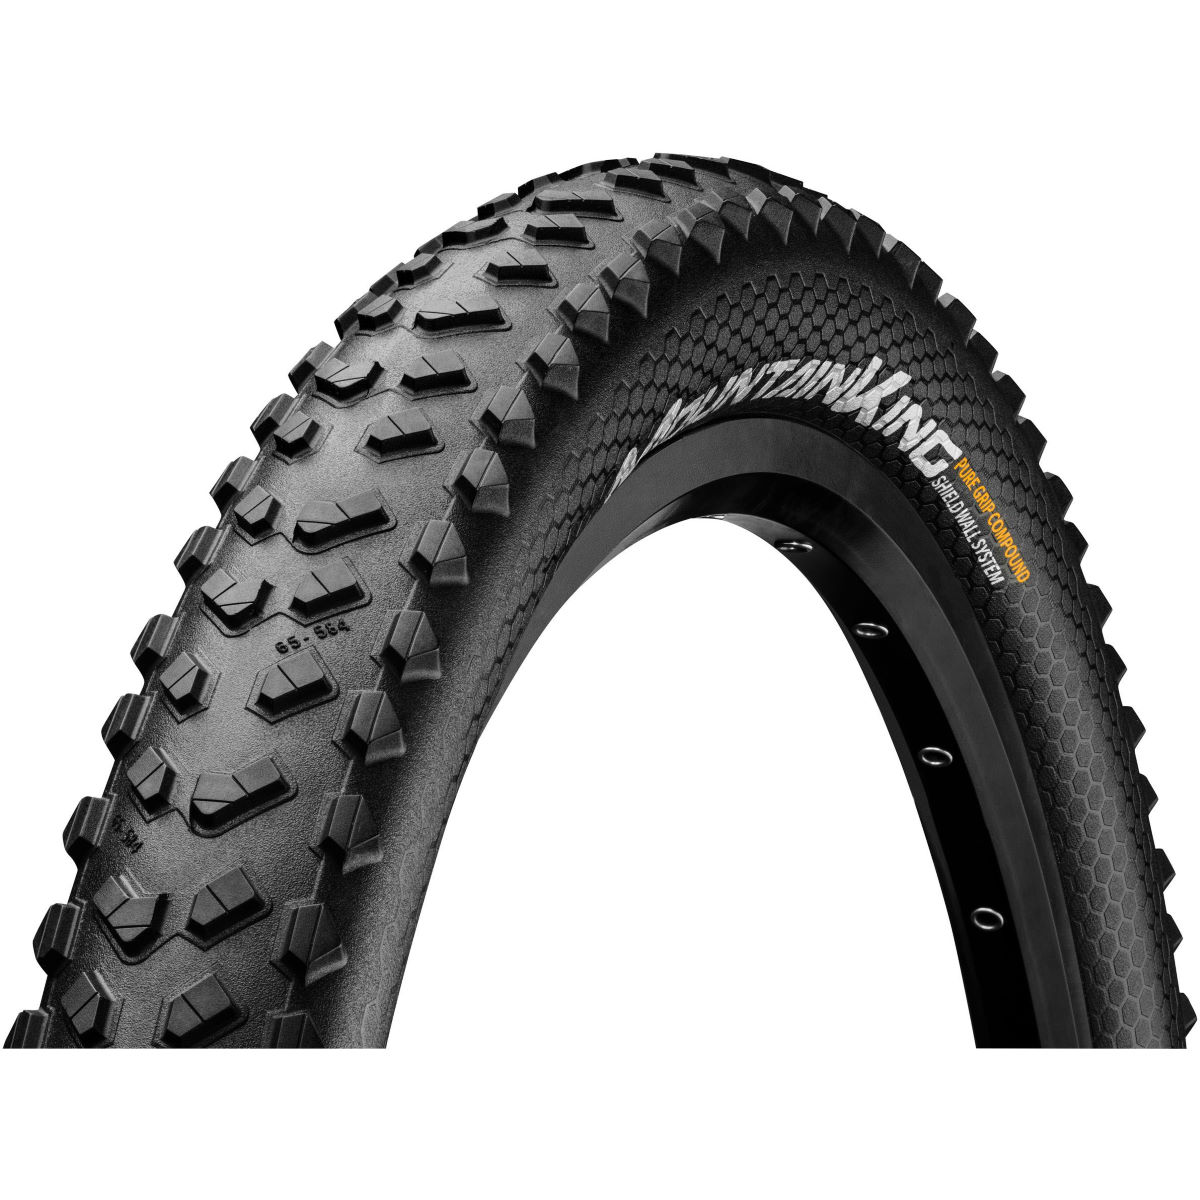 Continental Continental Mountain King III MTB TR Tyre   Tyres